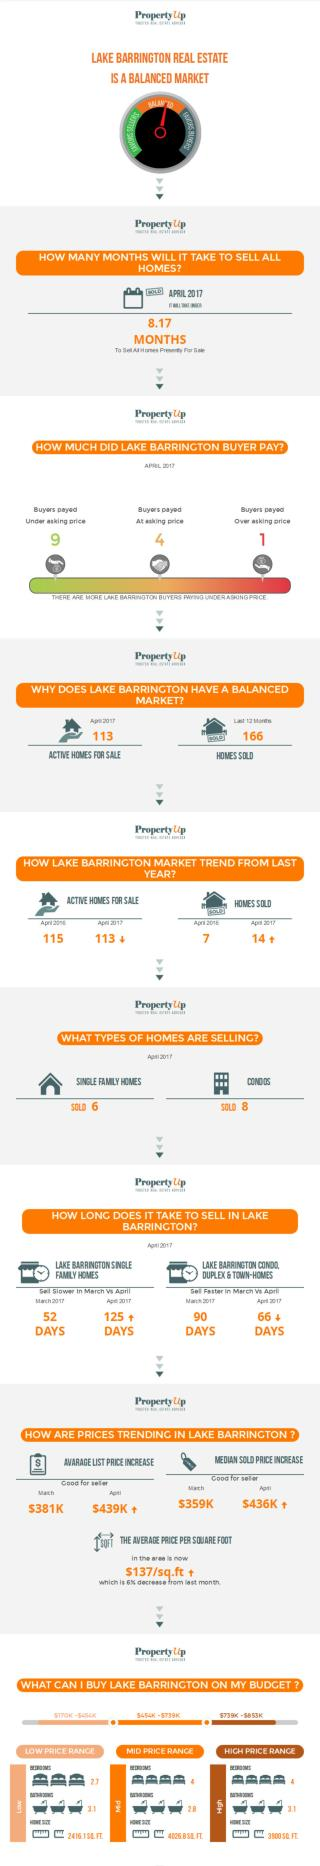 Lake Barrington Real Estate Market Update - PropertyUp